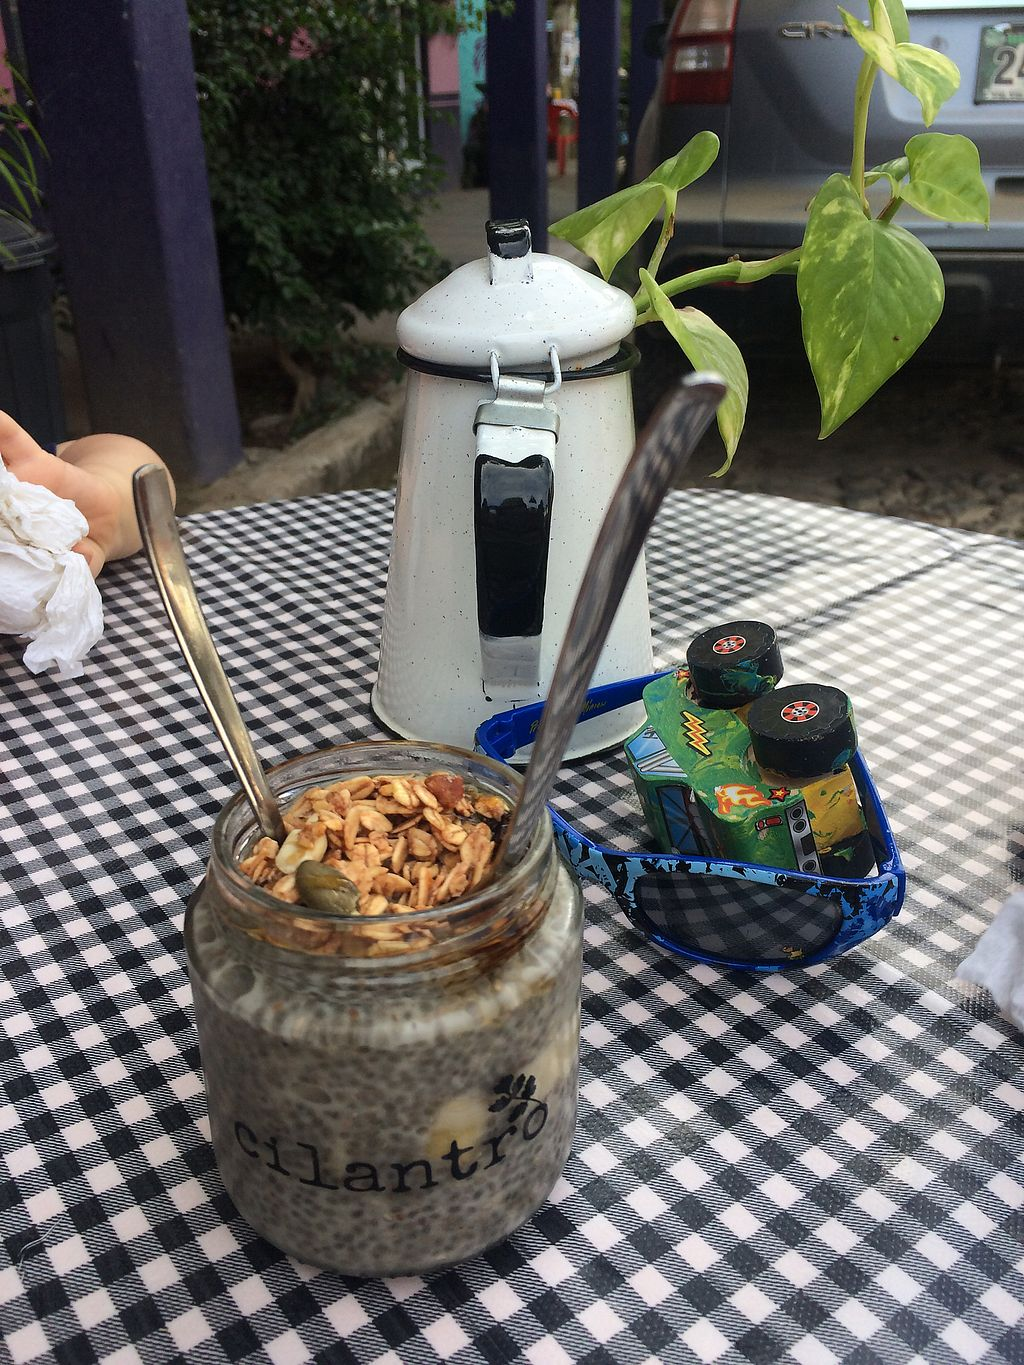 """Photo of Cilantro  by <a href=""""/members/profile/Katie%20Le"""">Katie Le</a> <br/>Chia pudding, outdoor table <br/> December 26, 2017  - <a href='/contact/abuse/image/102658/339296'>Report</a>"""